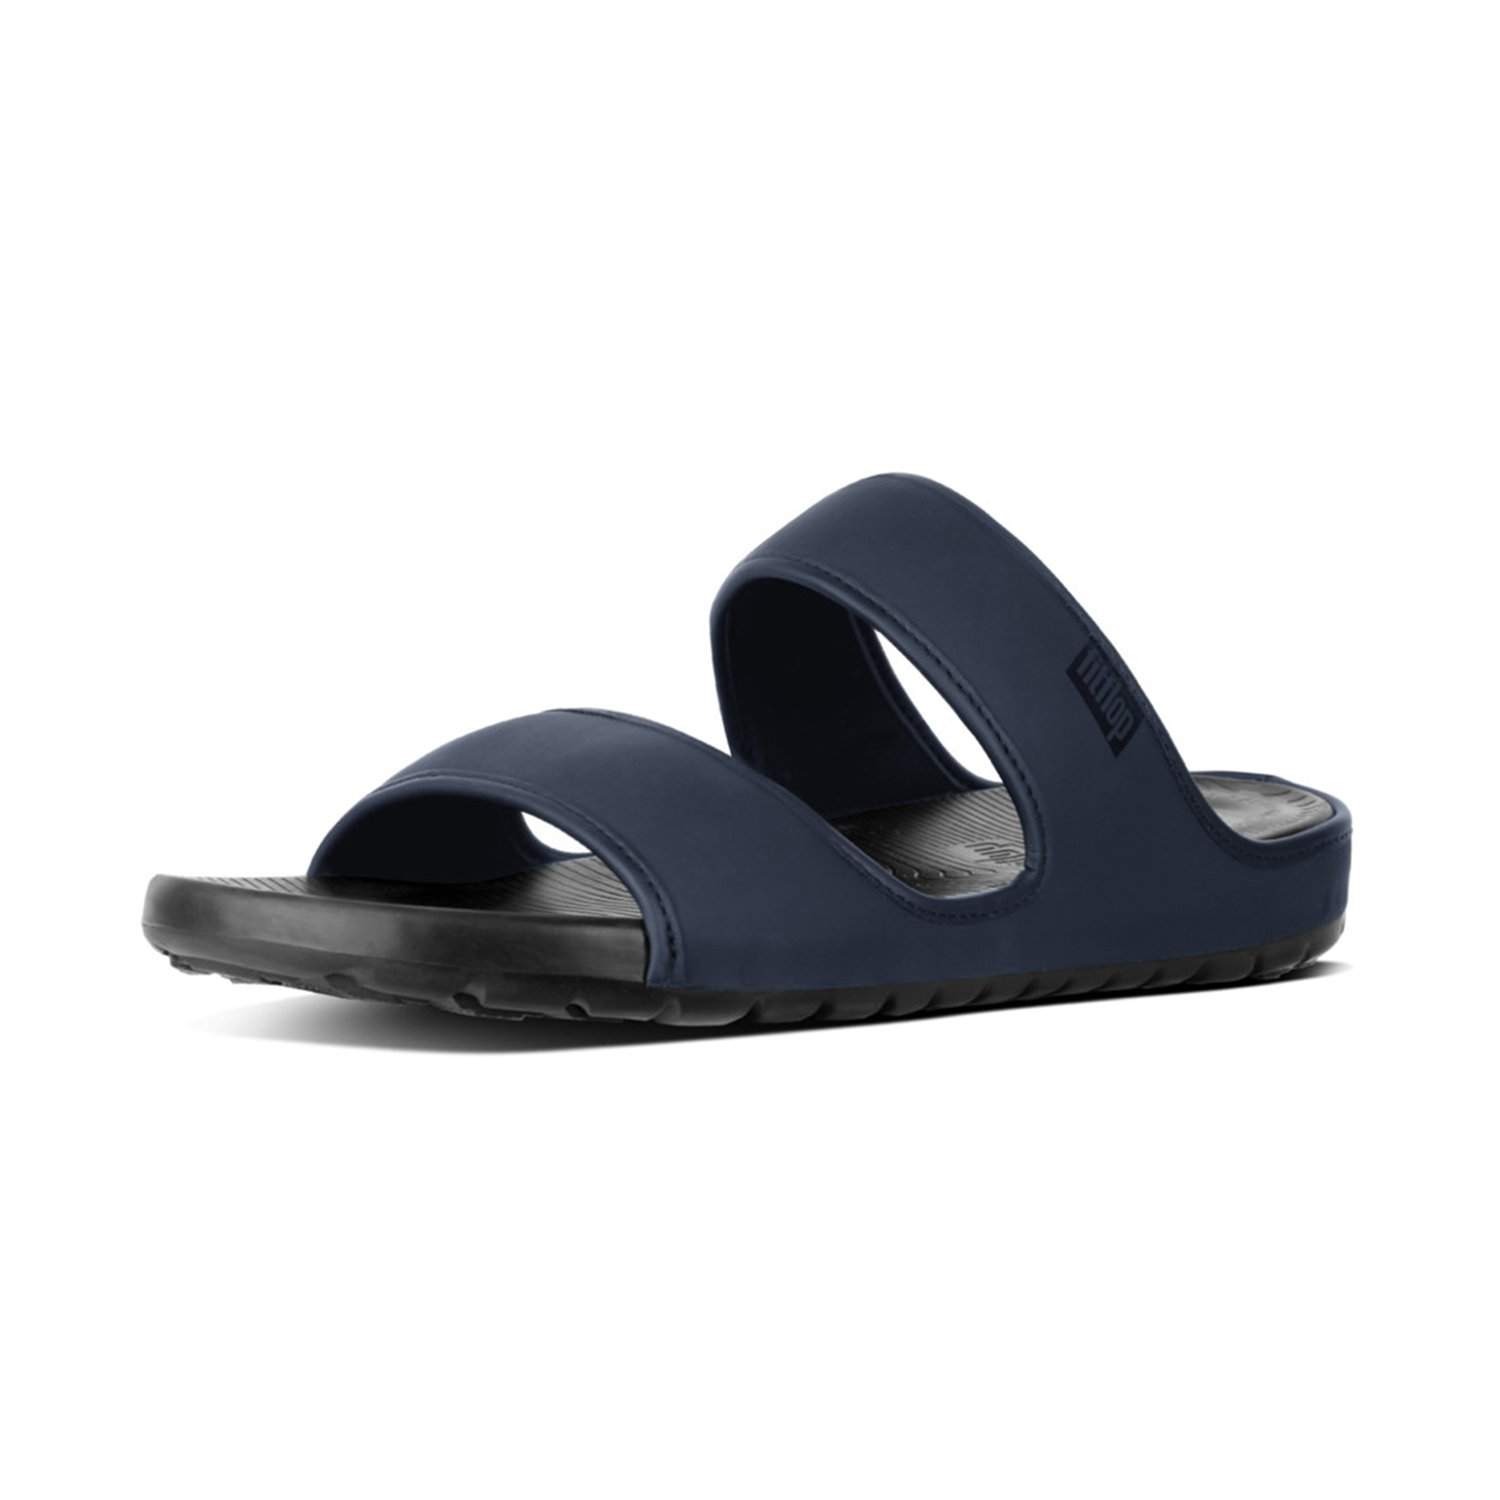 TALLA 42 EU. Fitflop Lido TM Double Slide Sandals In Neoprene, Chanclas para Hombre